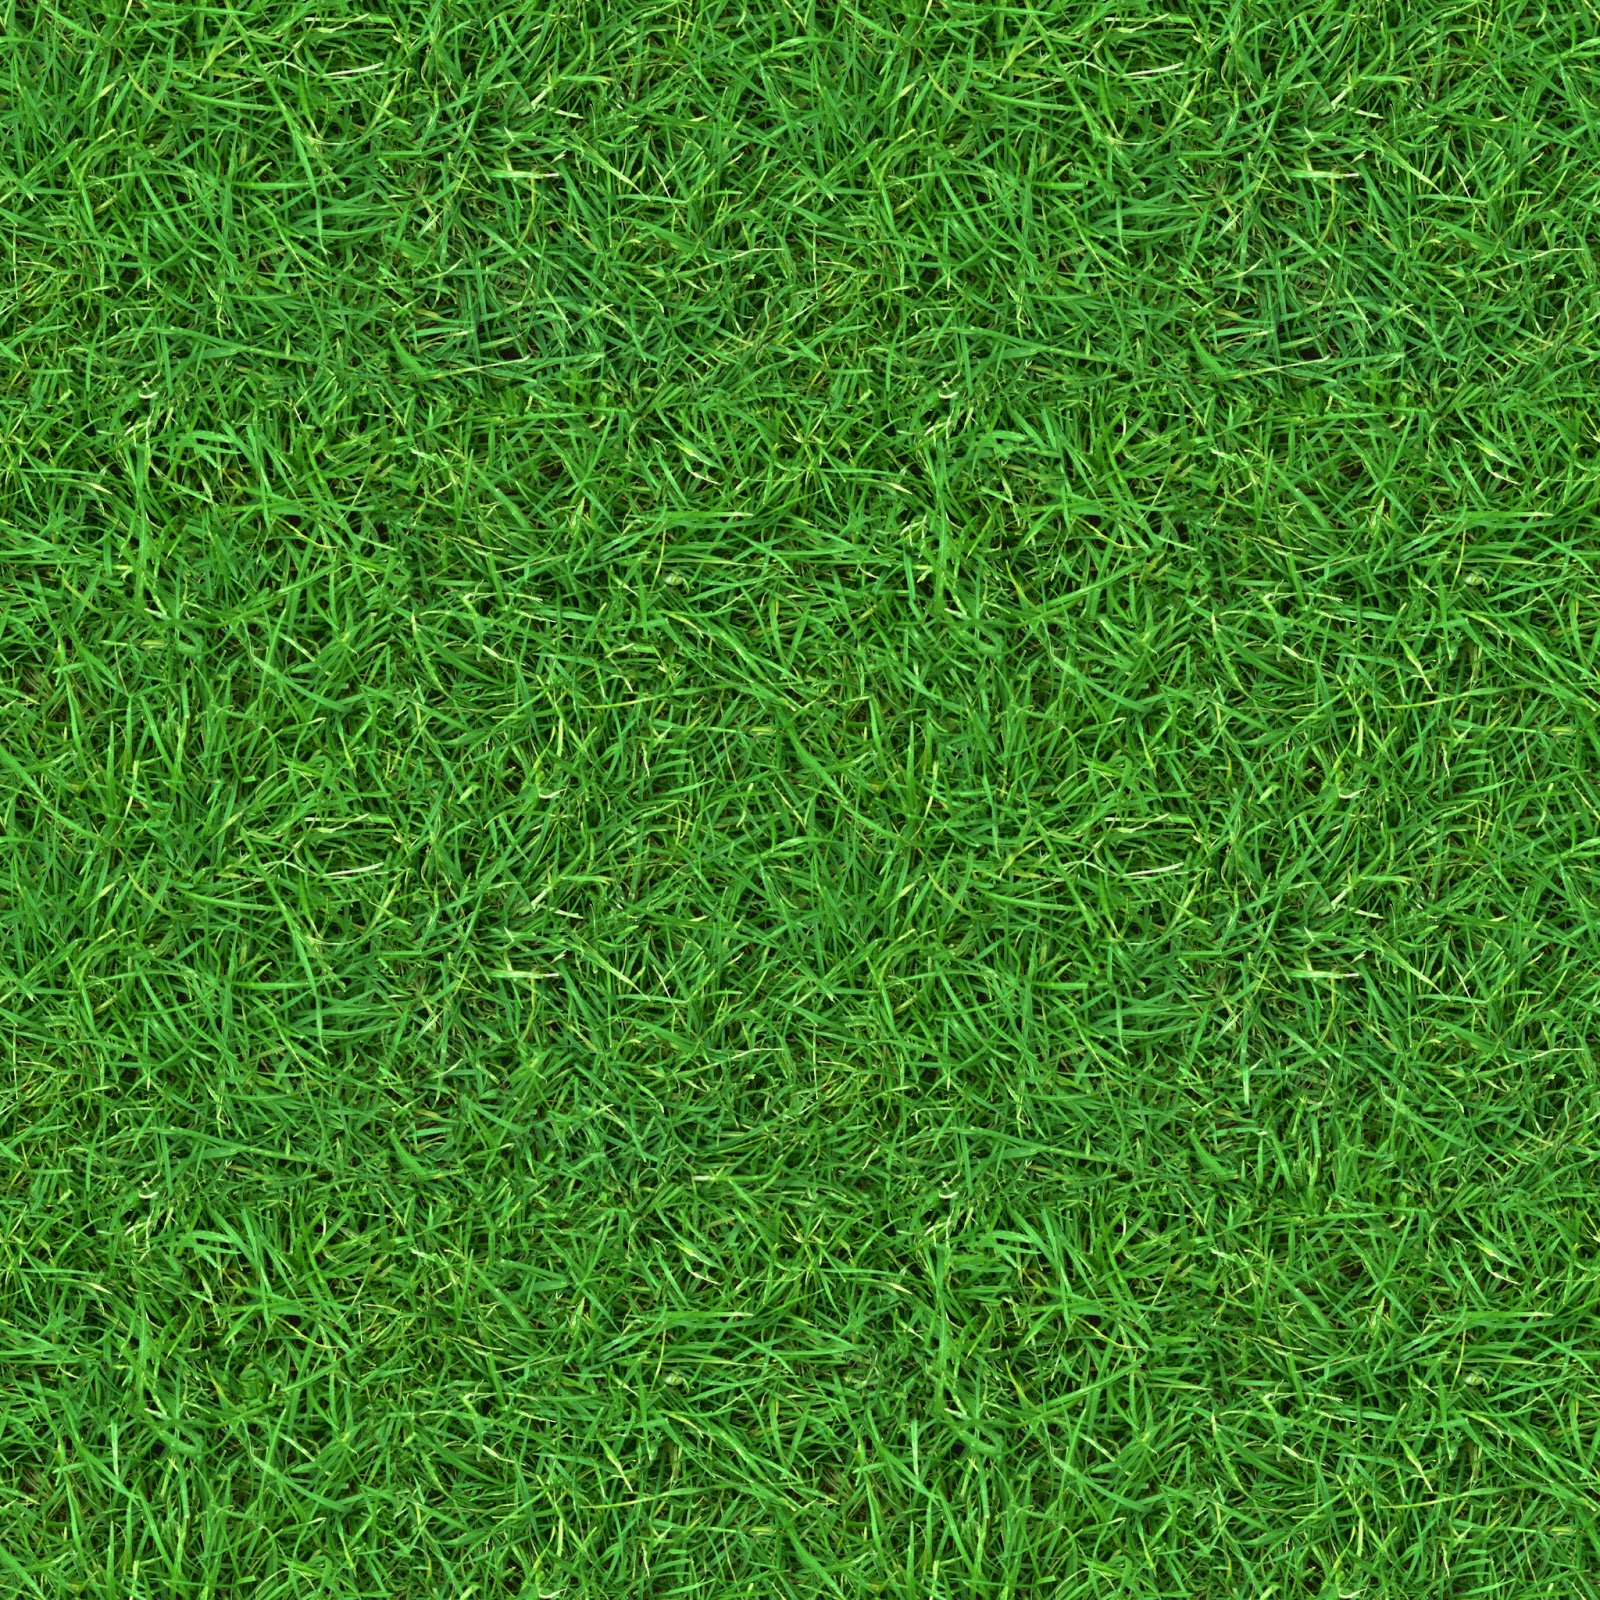 grass texture hd. (GRASS 2) Seamless Turf Lawn Green Ground Field Texture Grass Hd E